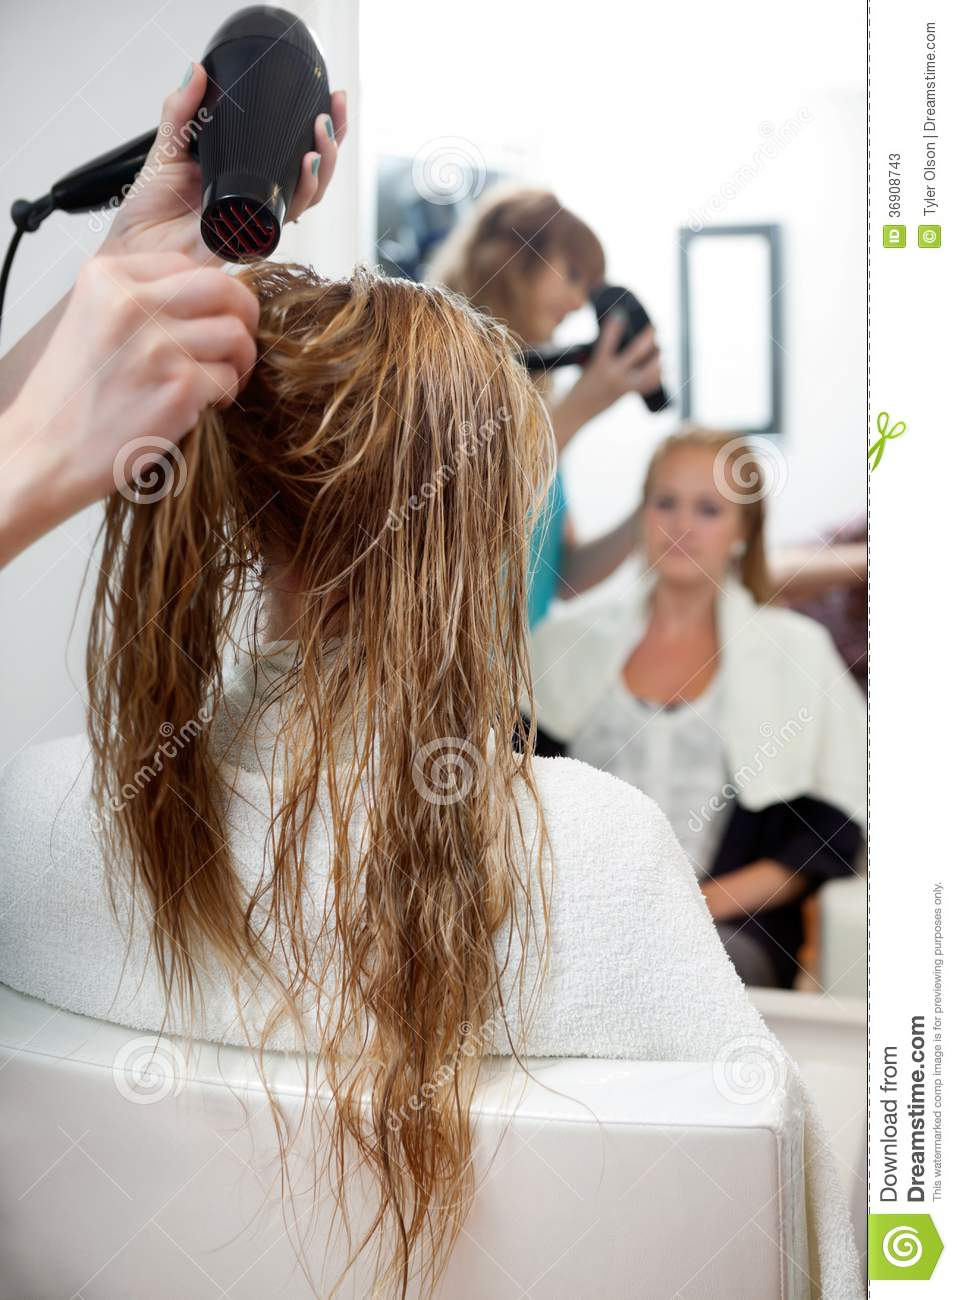 Drying Hair With Blow Dryer Stock Photos Image 36908743